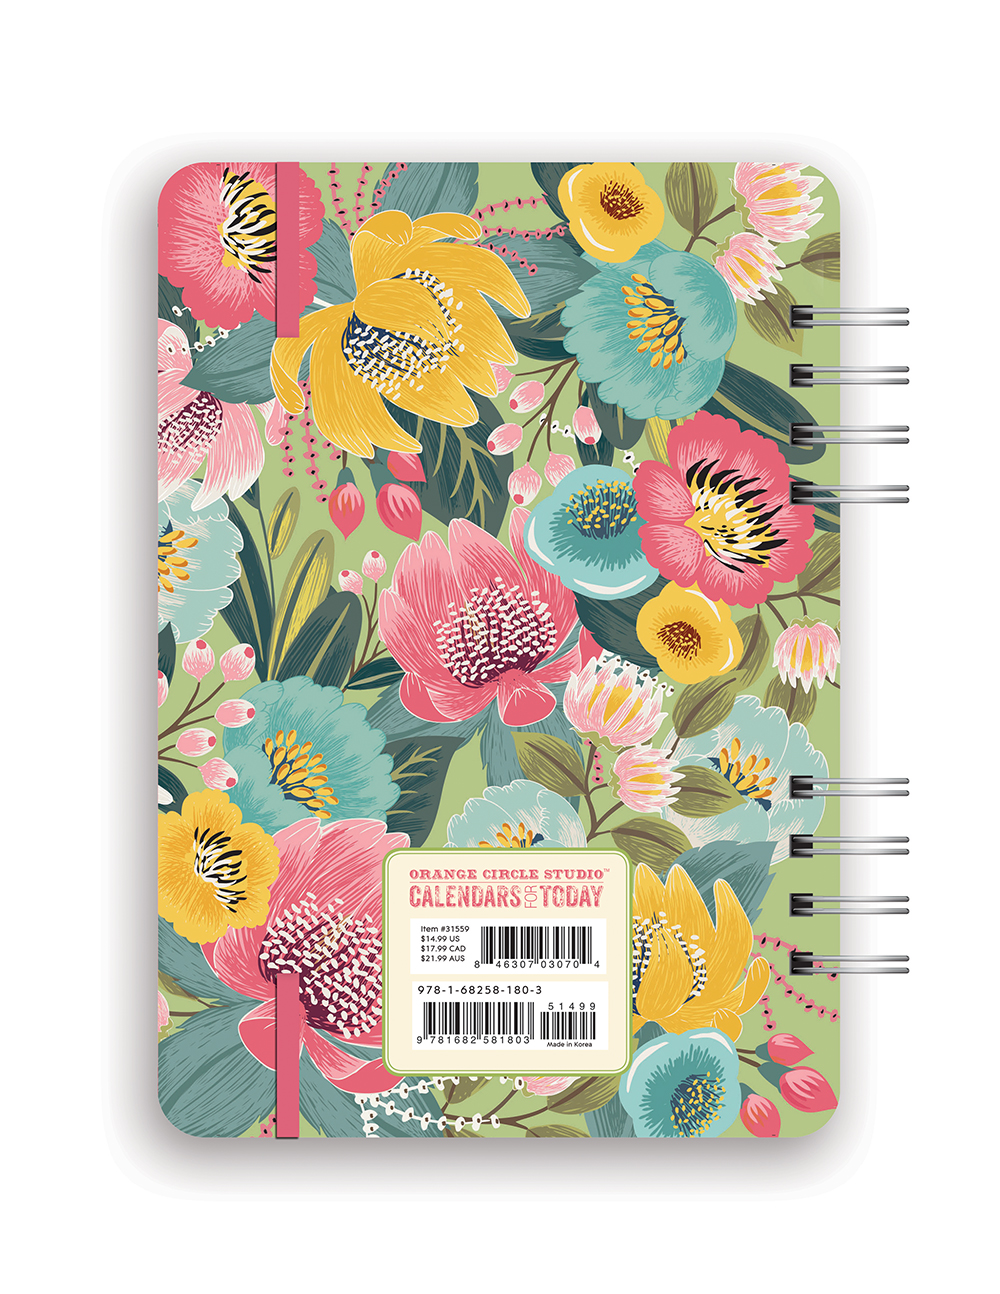 Bold Blossoms Do it All Planner 2018 by Orange Circle Studio back 9781682581803